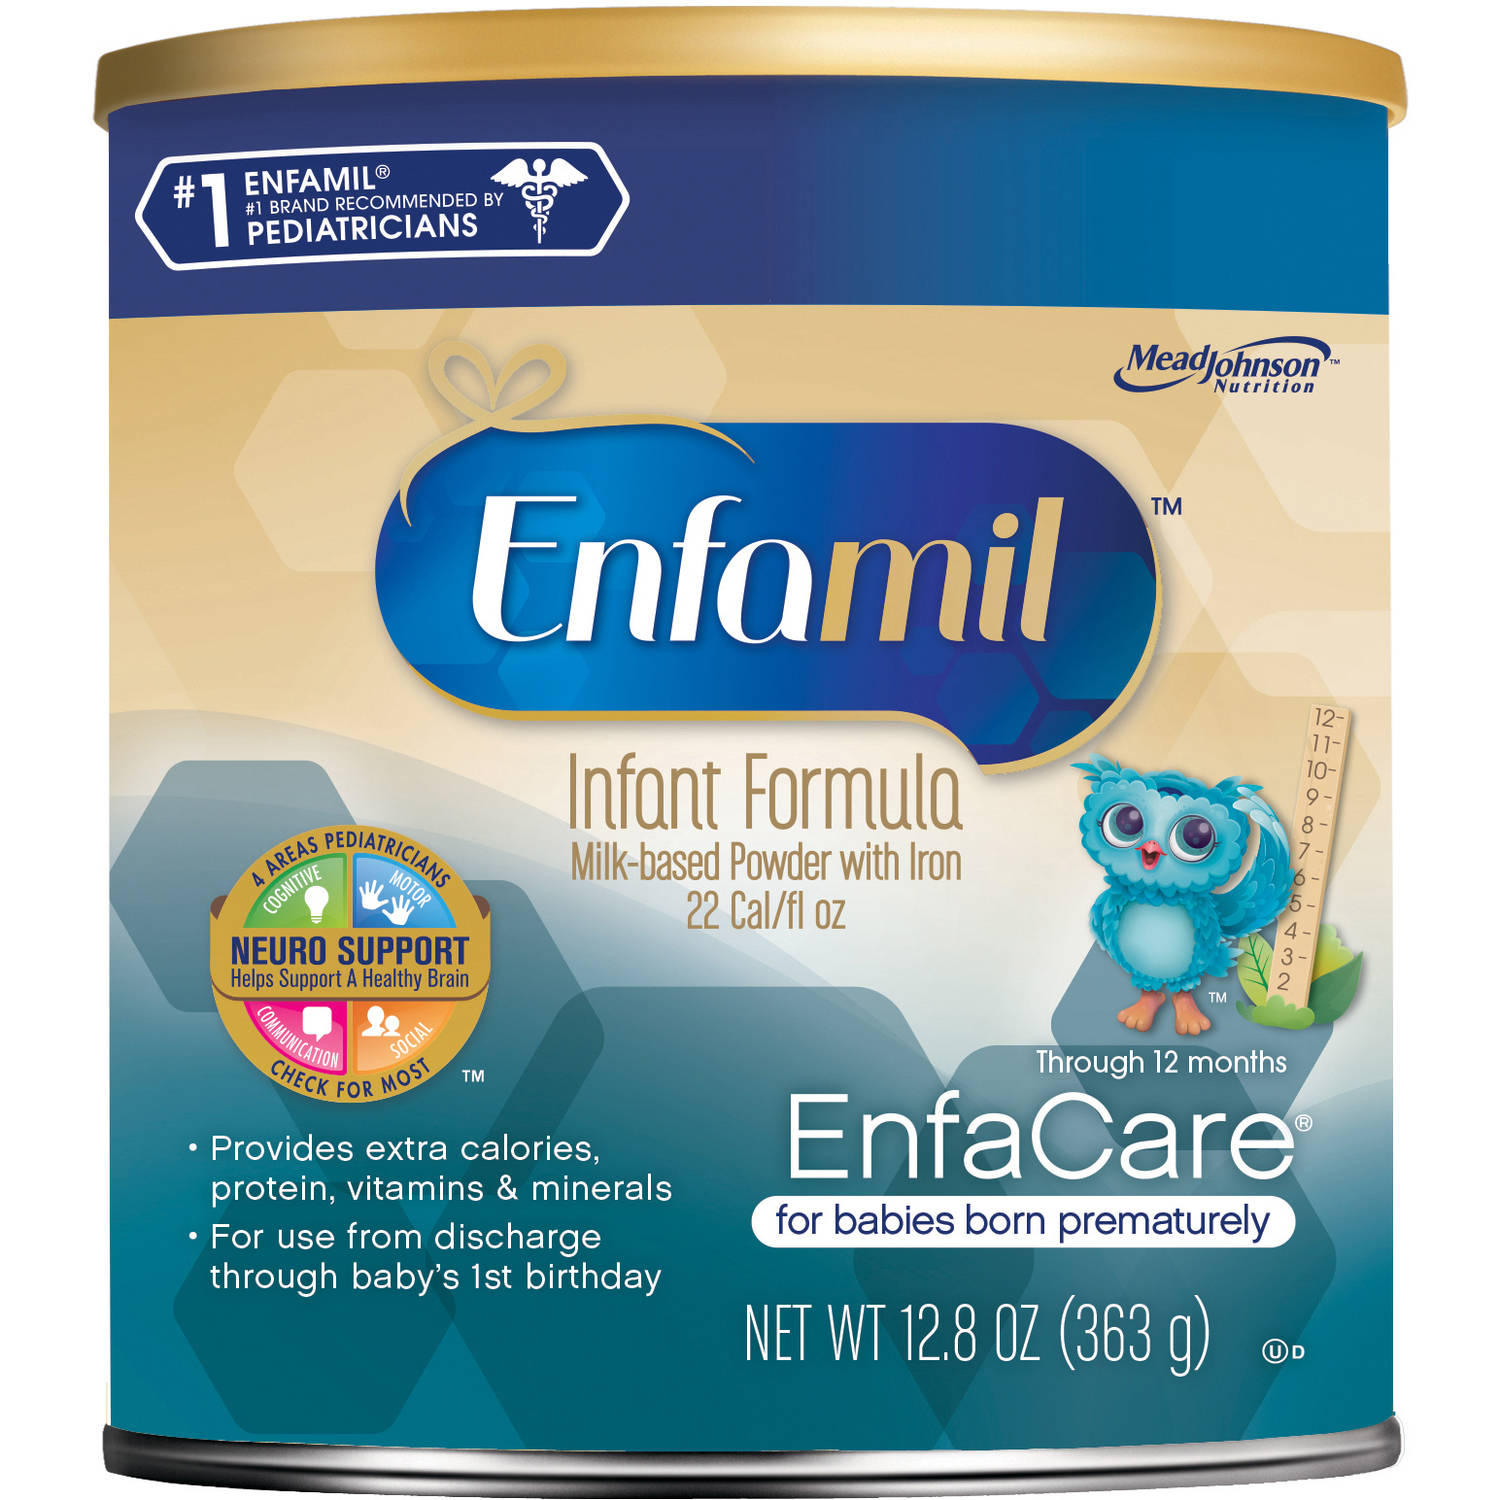 Enfamil EnfaCare baby formula - 12.8 oz Powder Can